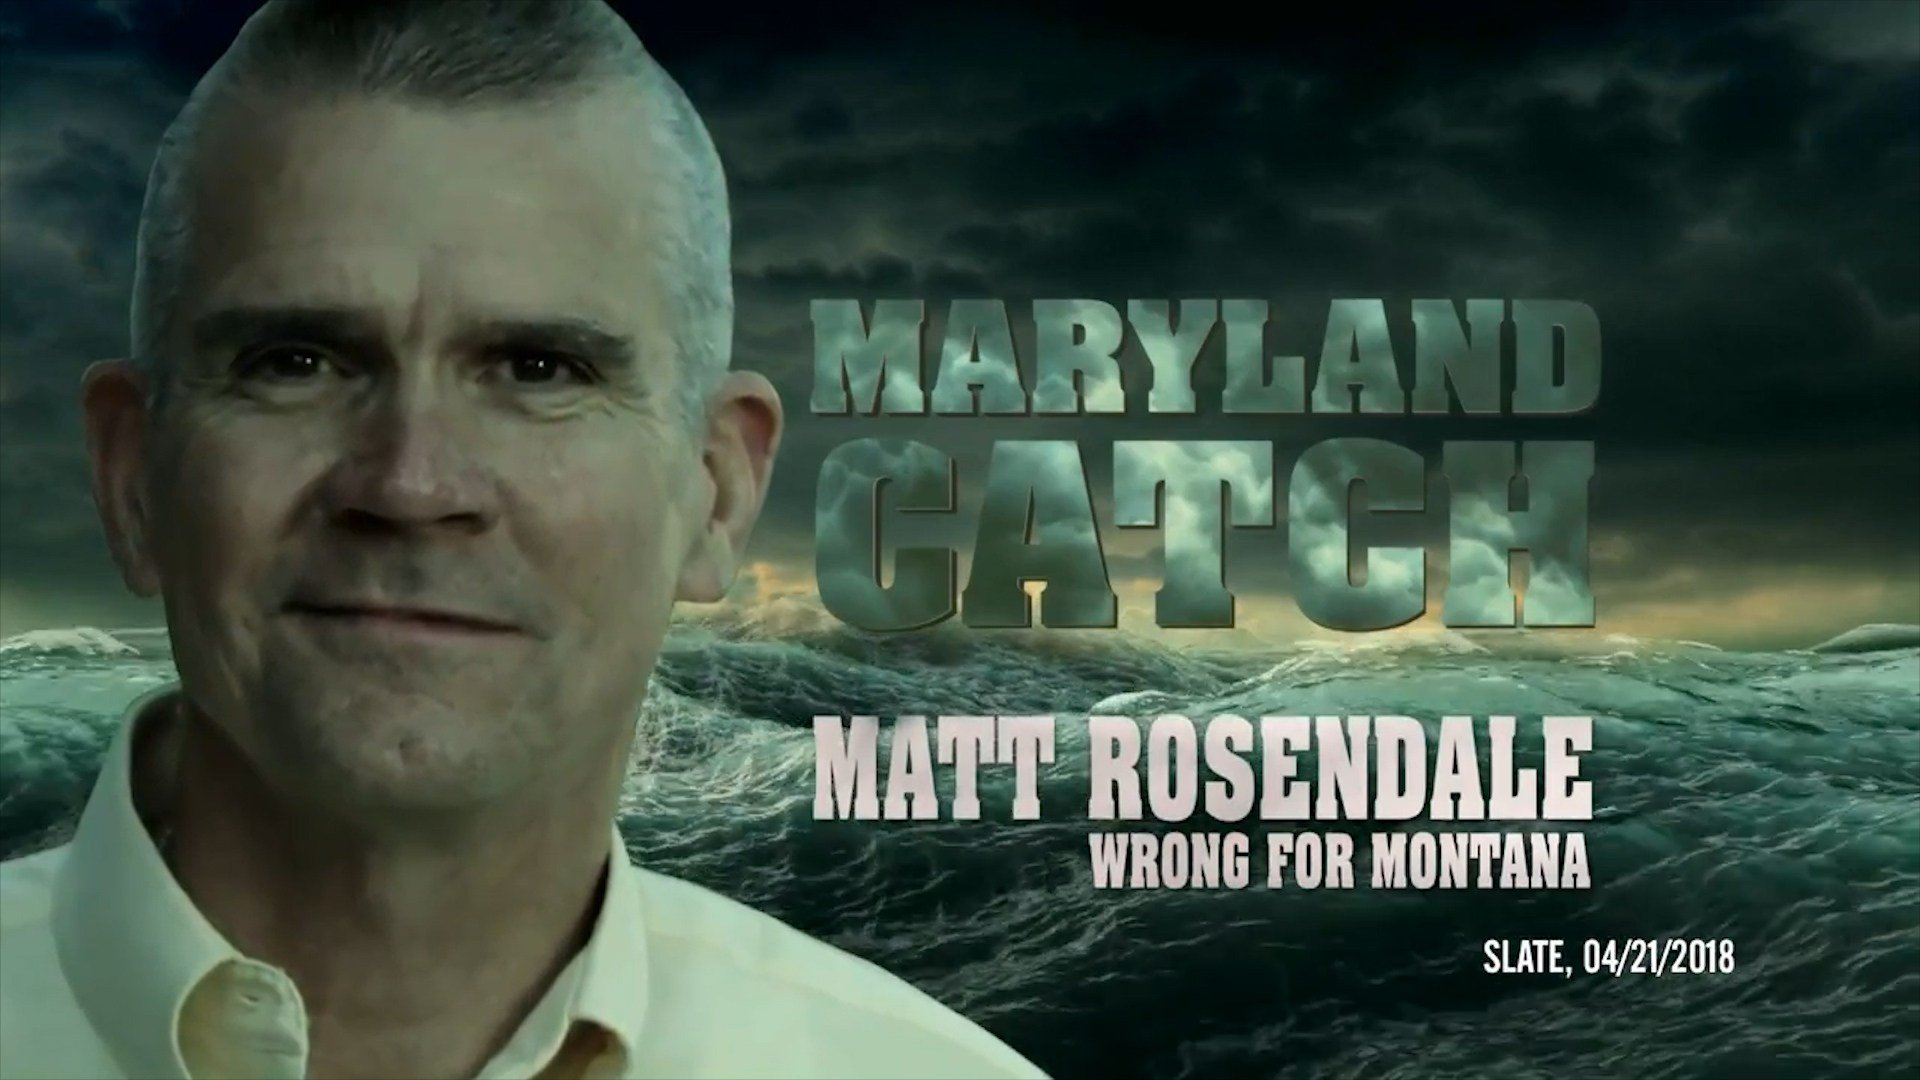 Anti-Rosendale ad from obscure PAC